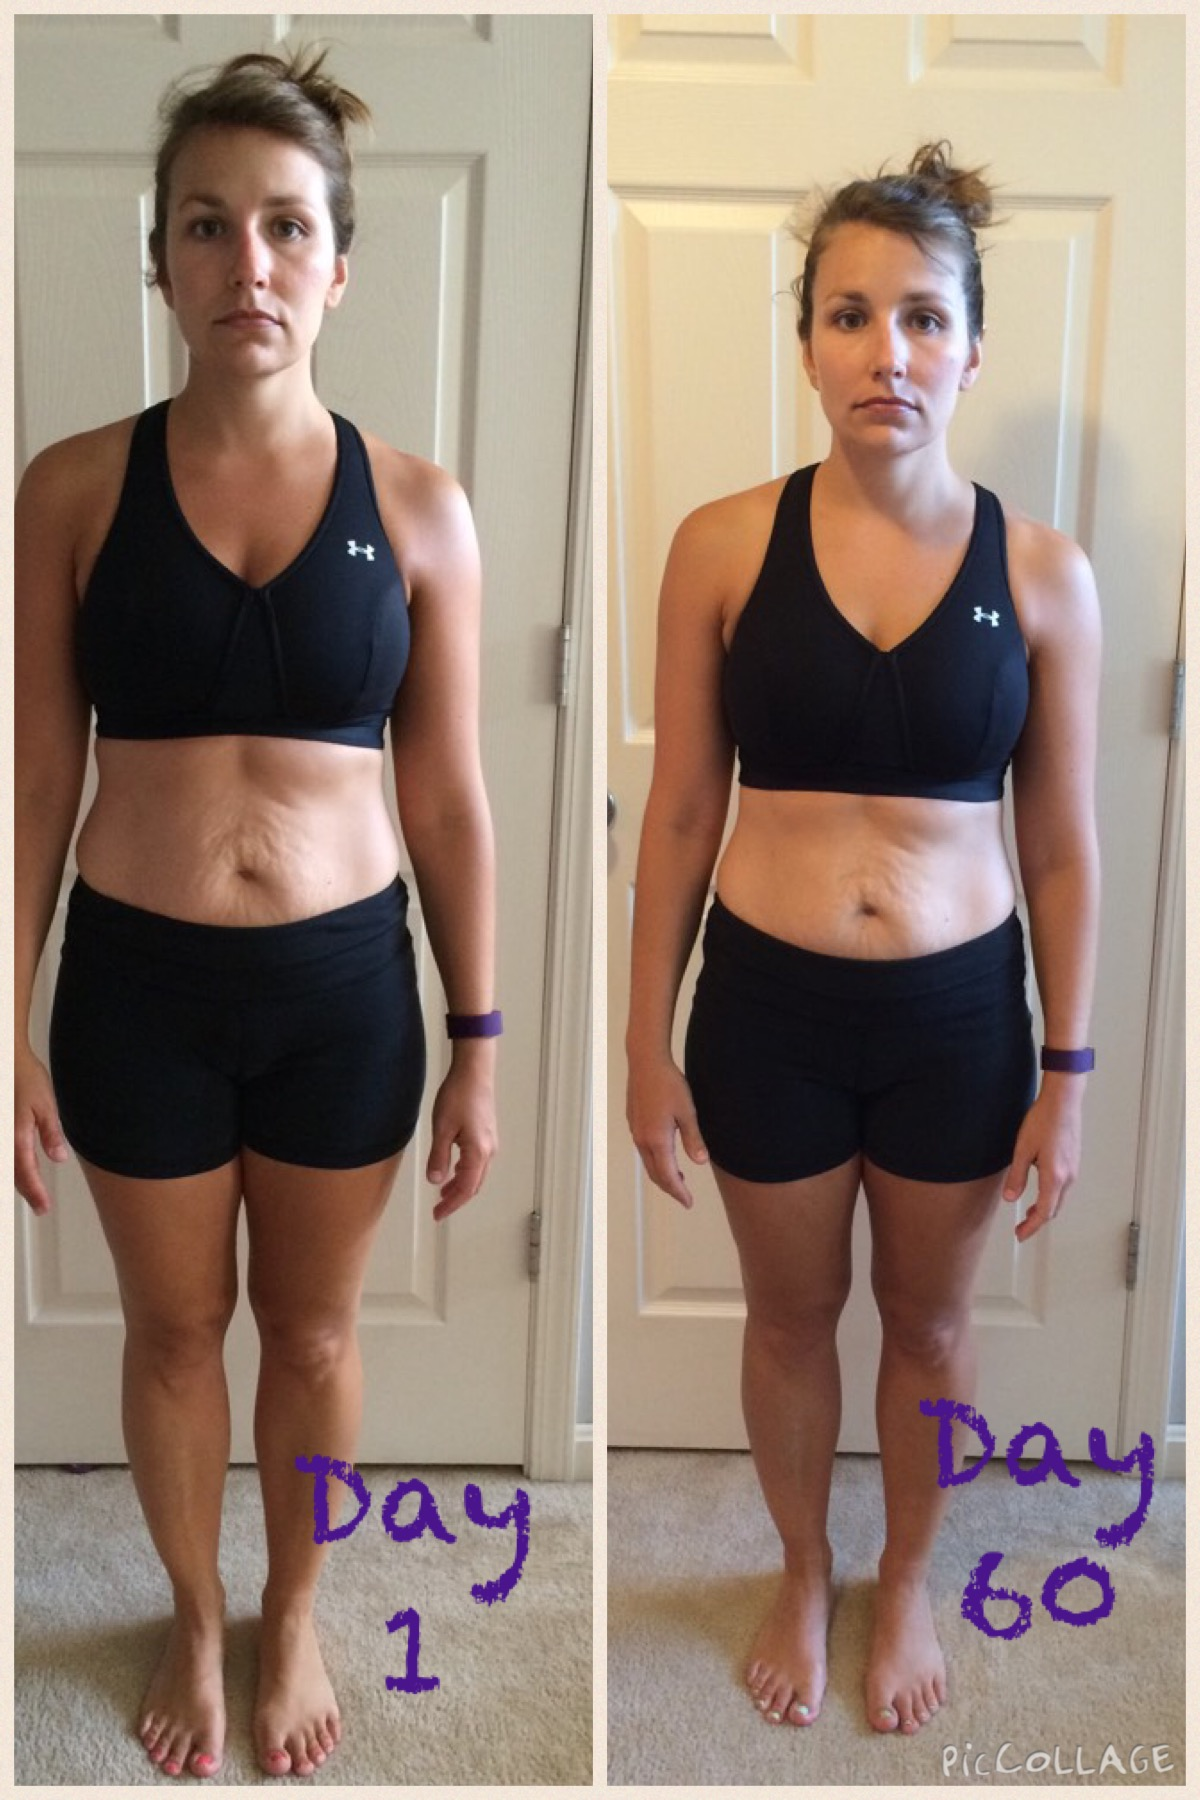 Insanity Workout Before And After : insanity, workout, before, after, Insanity, Max:30, Month, Girls